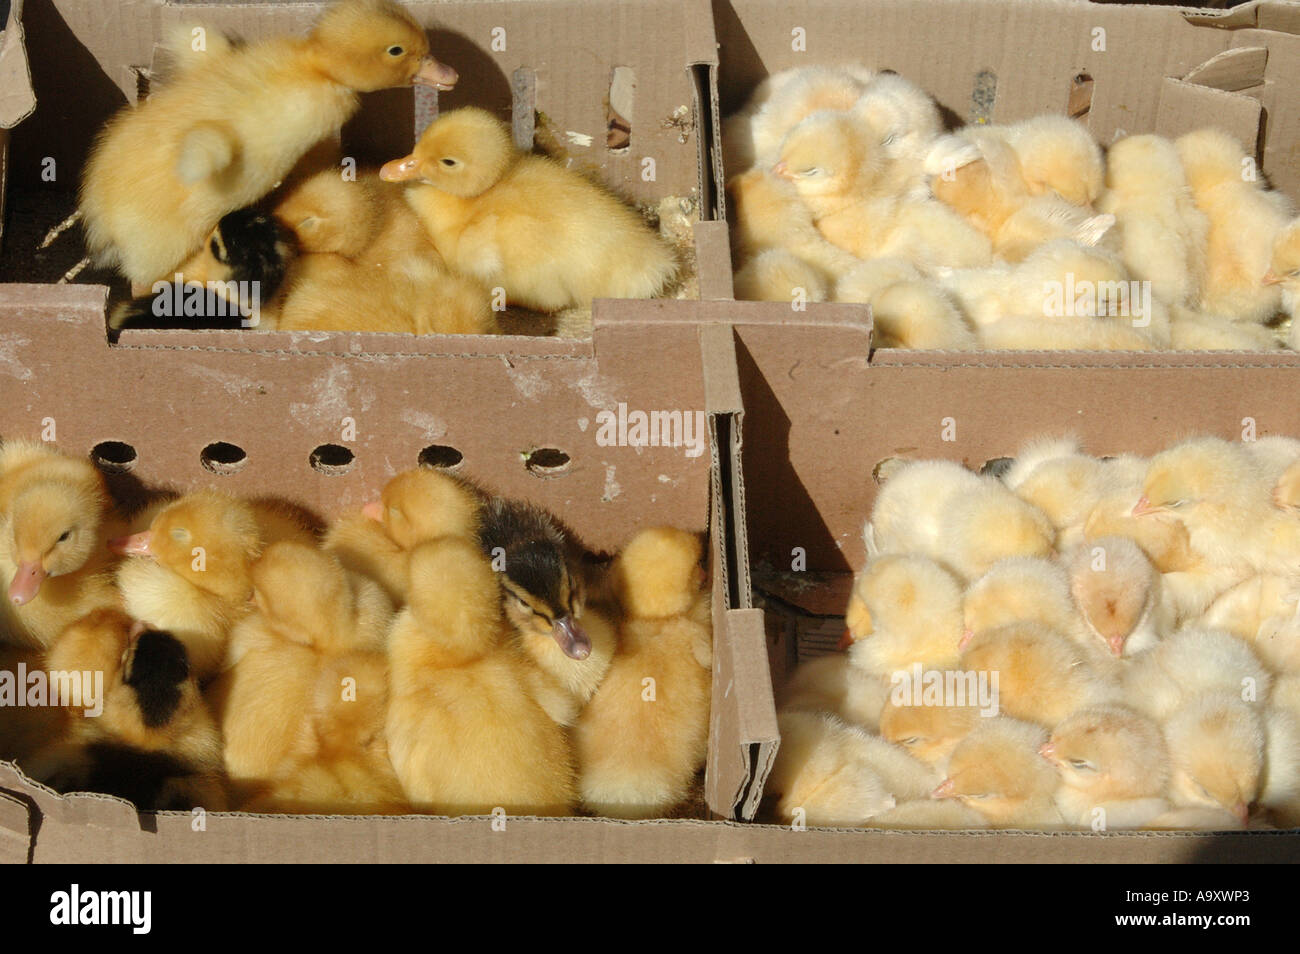 ducklings and chicks for sale on the street in kadikoy on the asian coast of istanbul, Turkey - Stock Image